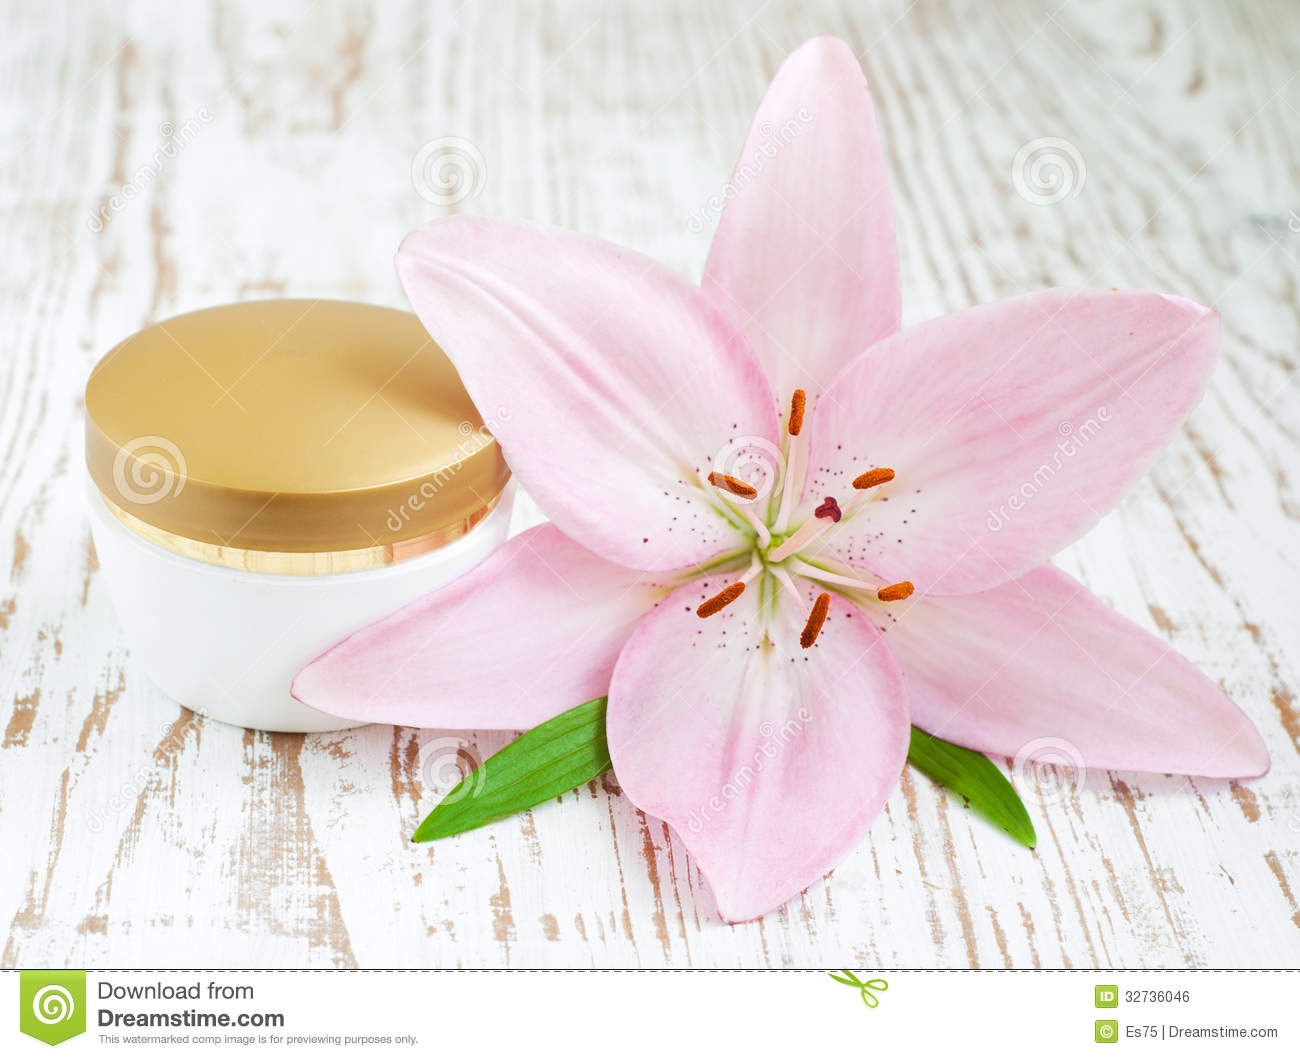 Face cream with lily flowers stock photo image of care flower download face cream with lily flowers stock photo image of care flower 32736046 izmirmasajfo